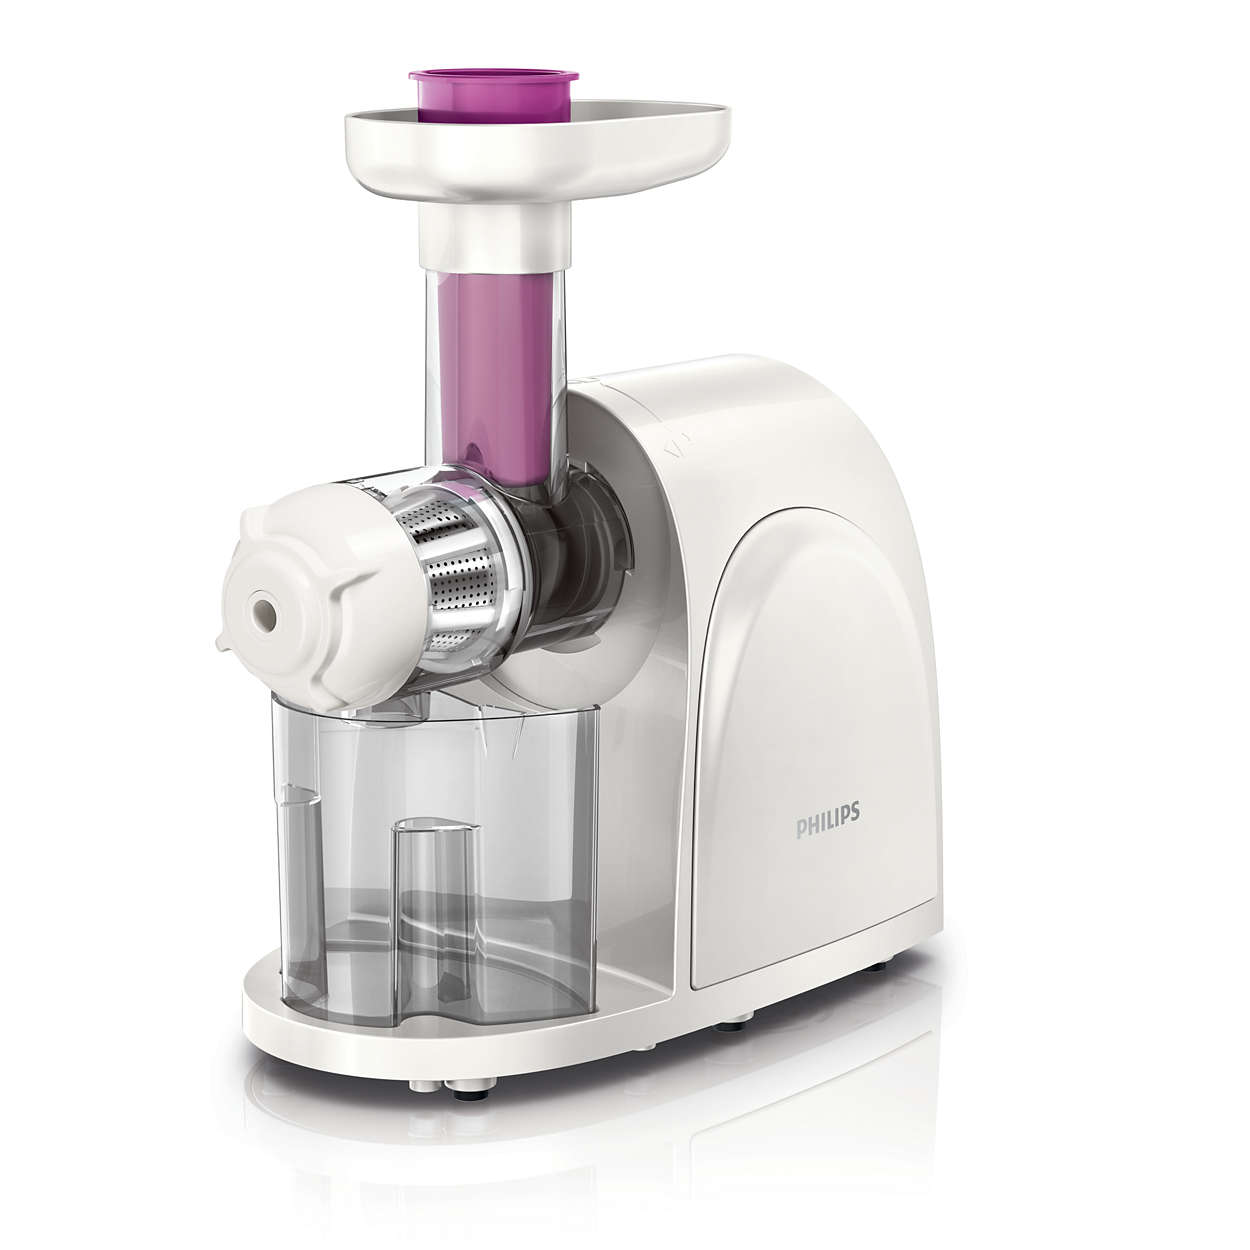 Slow Juicer : viva Collection Slow juicer HR1830/03 Philips